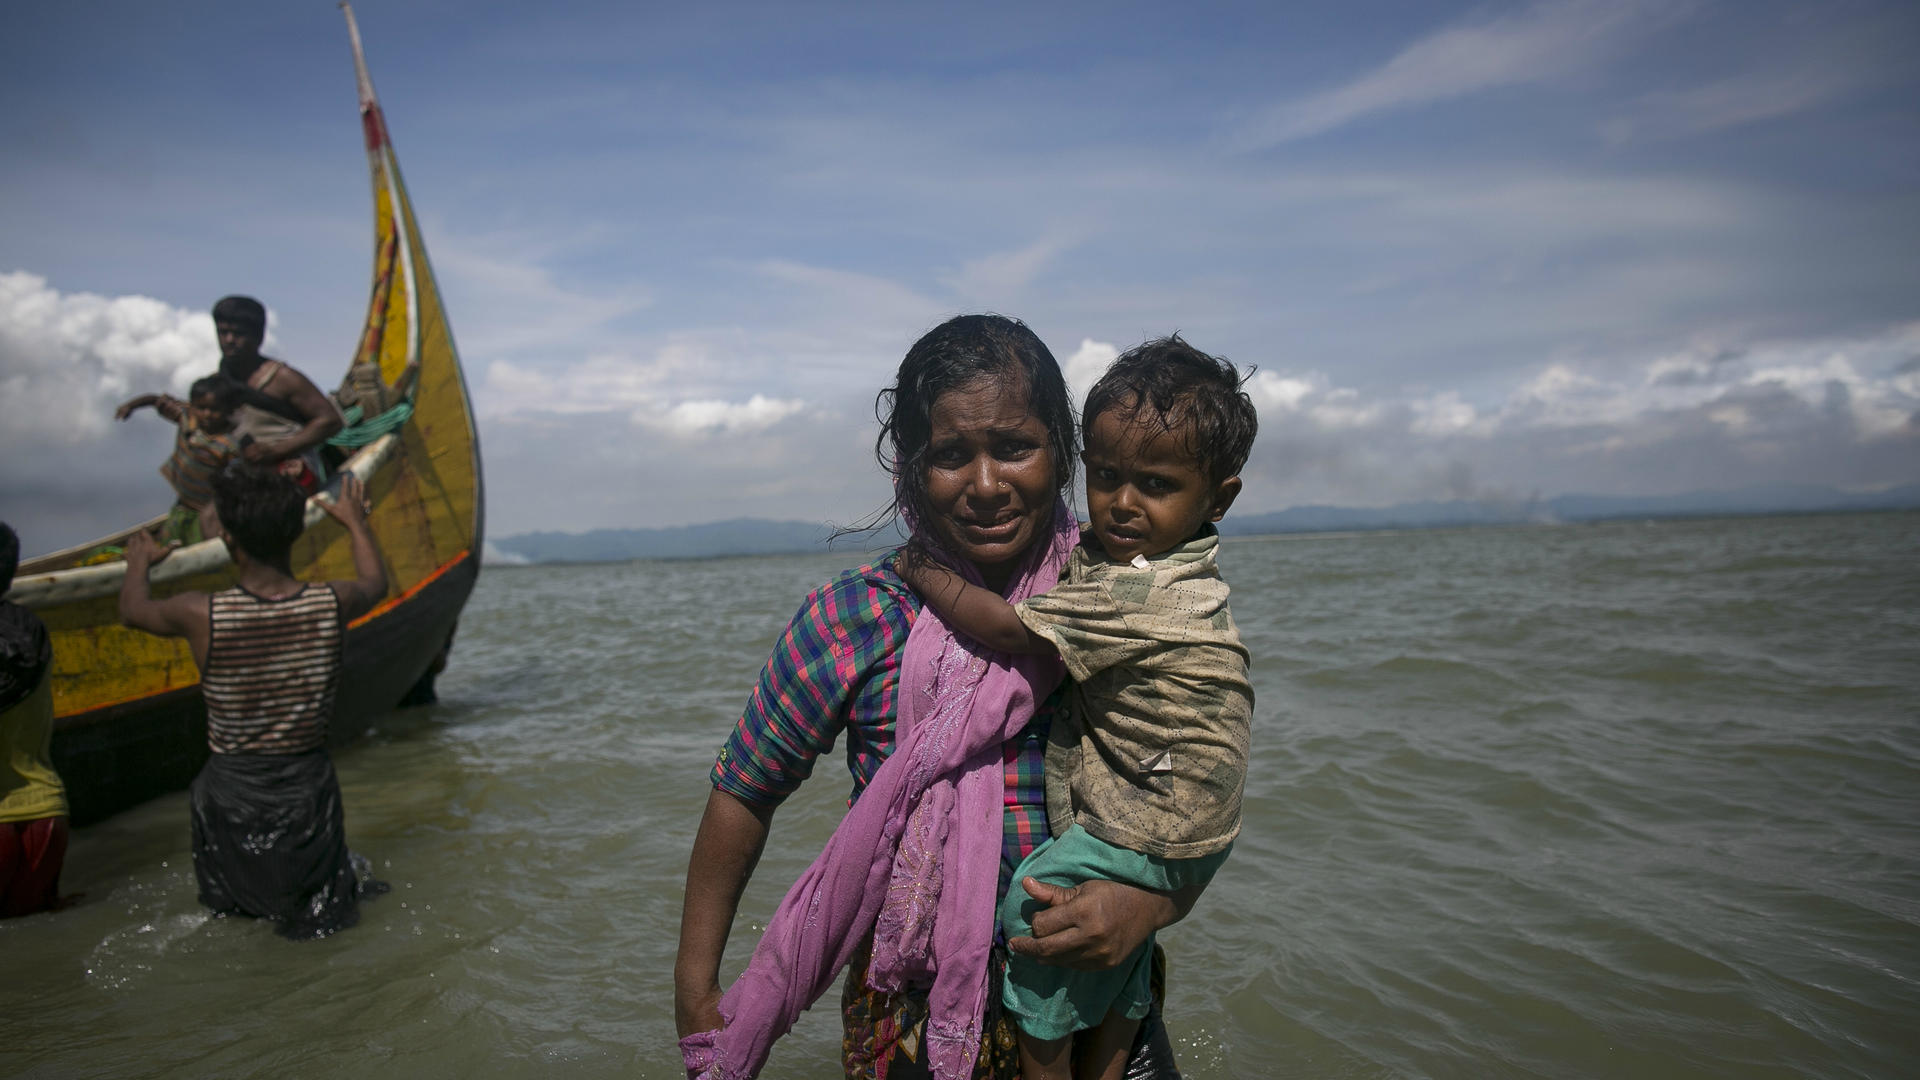 A Rohingya mother carries her baby to shore in Bangladesh from the boat that brought them and other Rohingya Muslim refugees from Rakhine State in Myanmar.